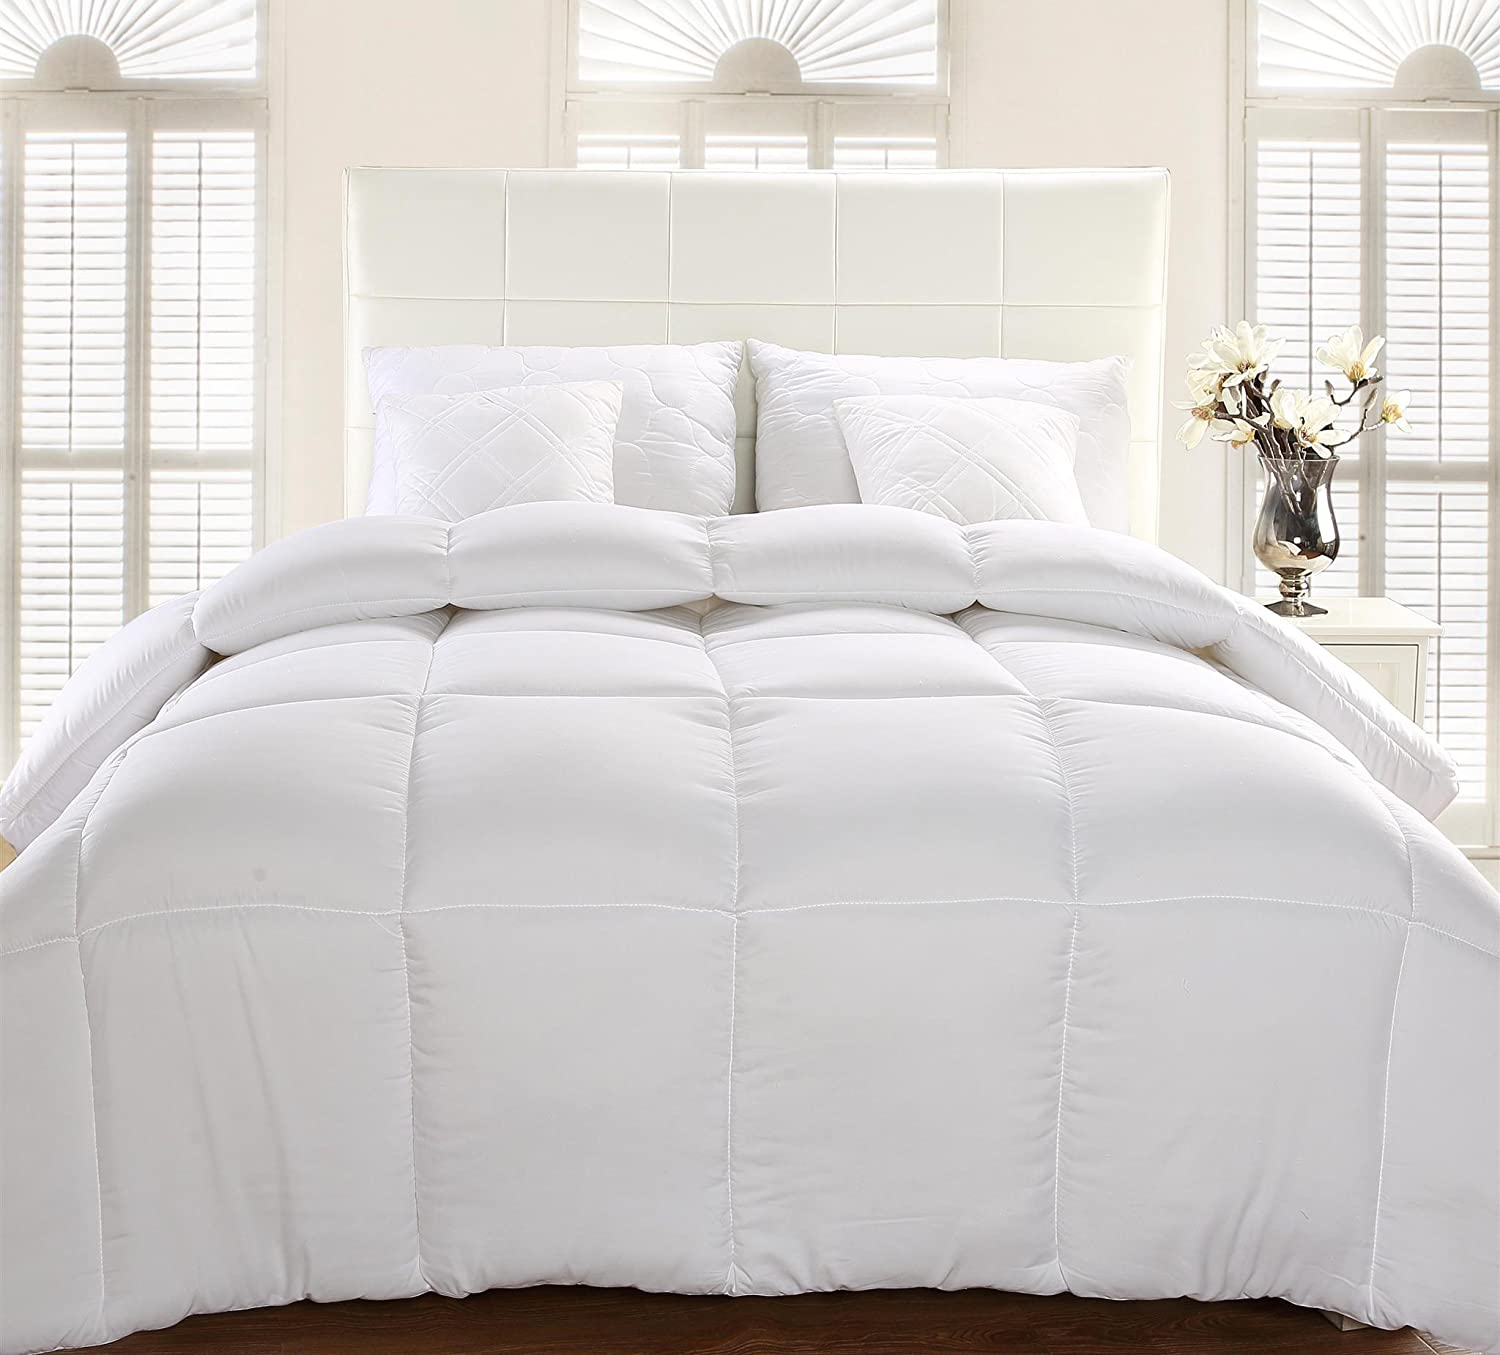 Comforter Duvet Insert White Quilted Down Alternative Box Design Utopia Bedding